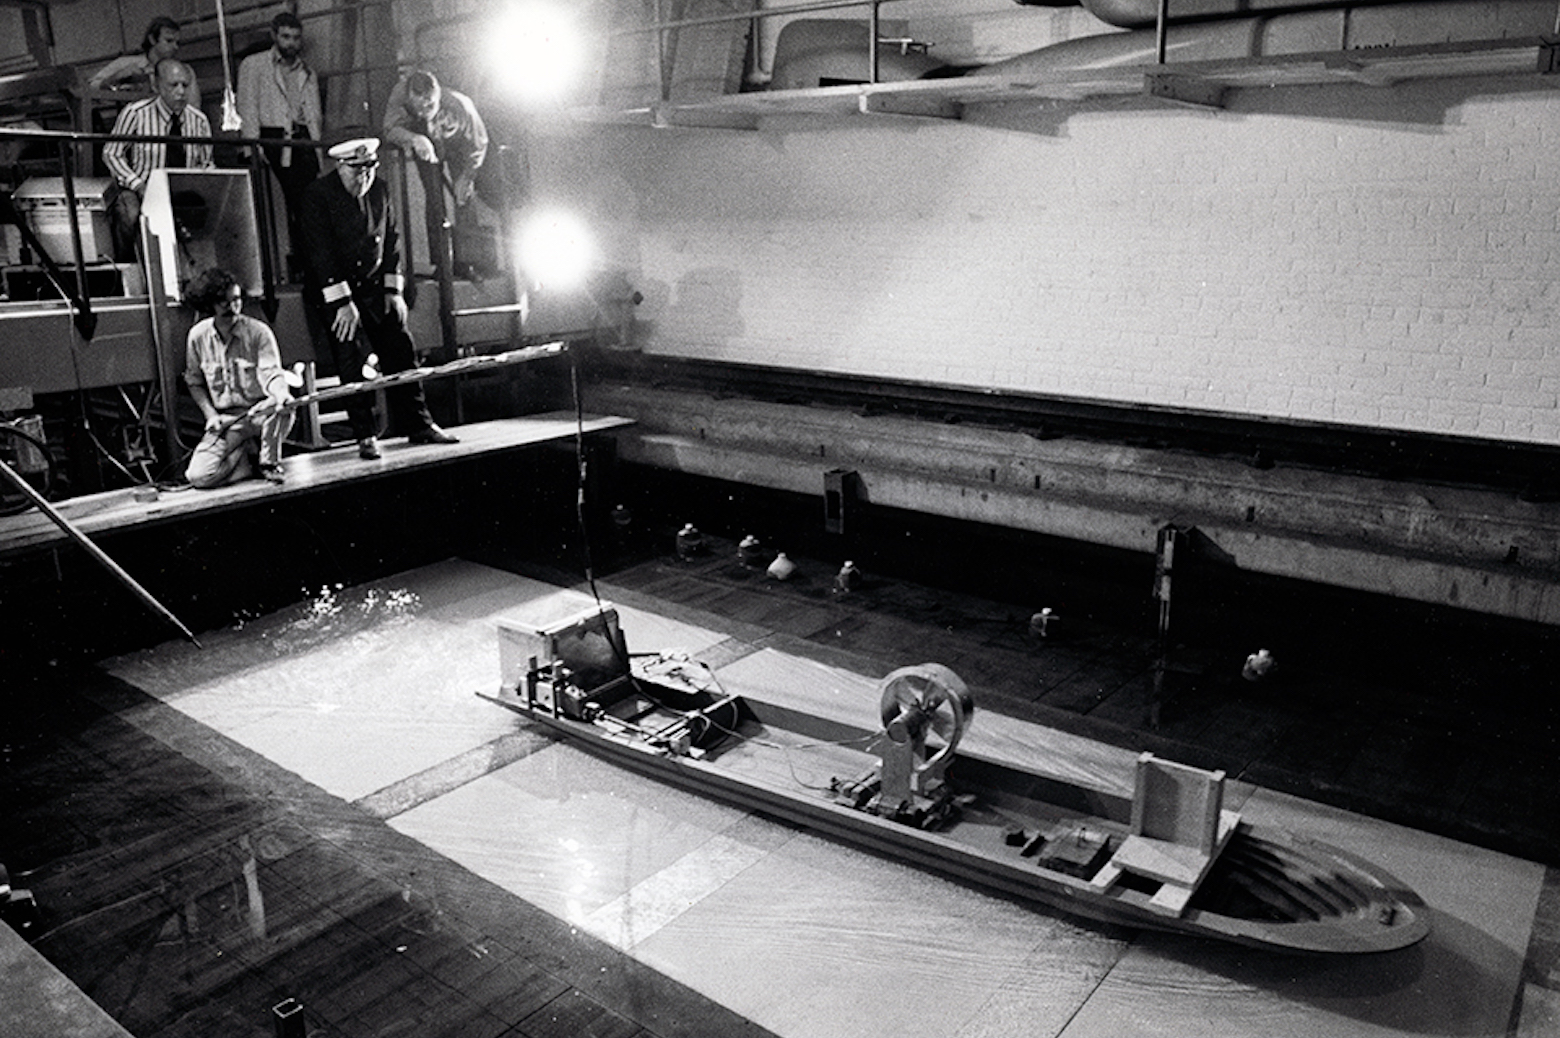 R.B. Couch and Ernst Wagner testing of paddlewheel design for proposed replica of Delta Queen steamboat circa 1960s.